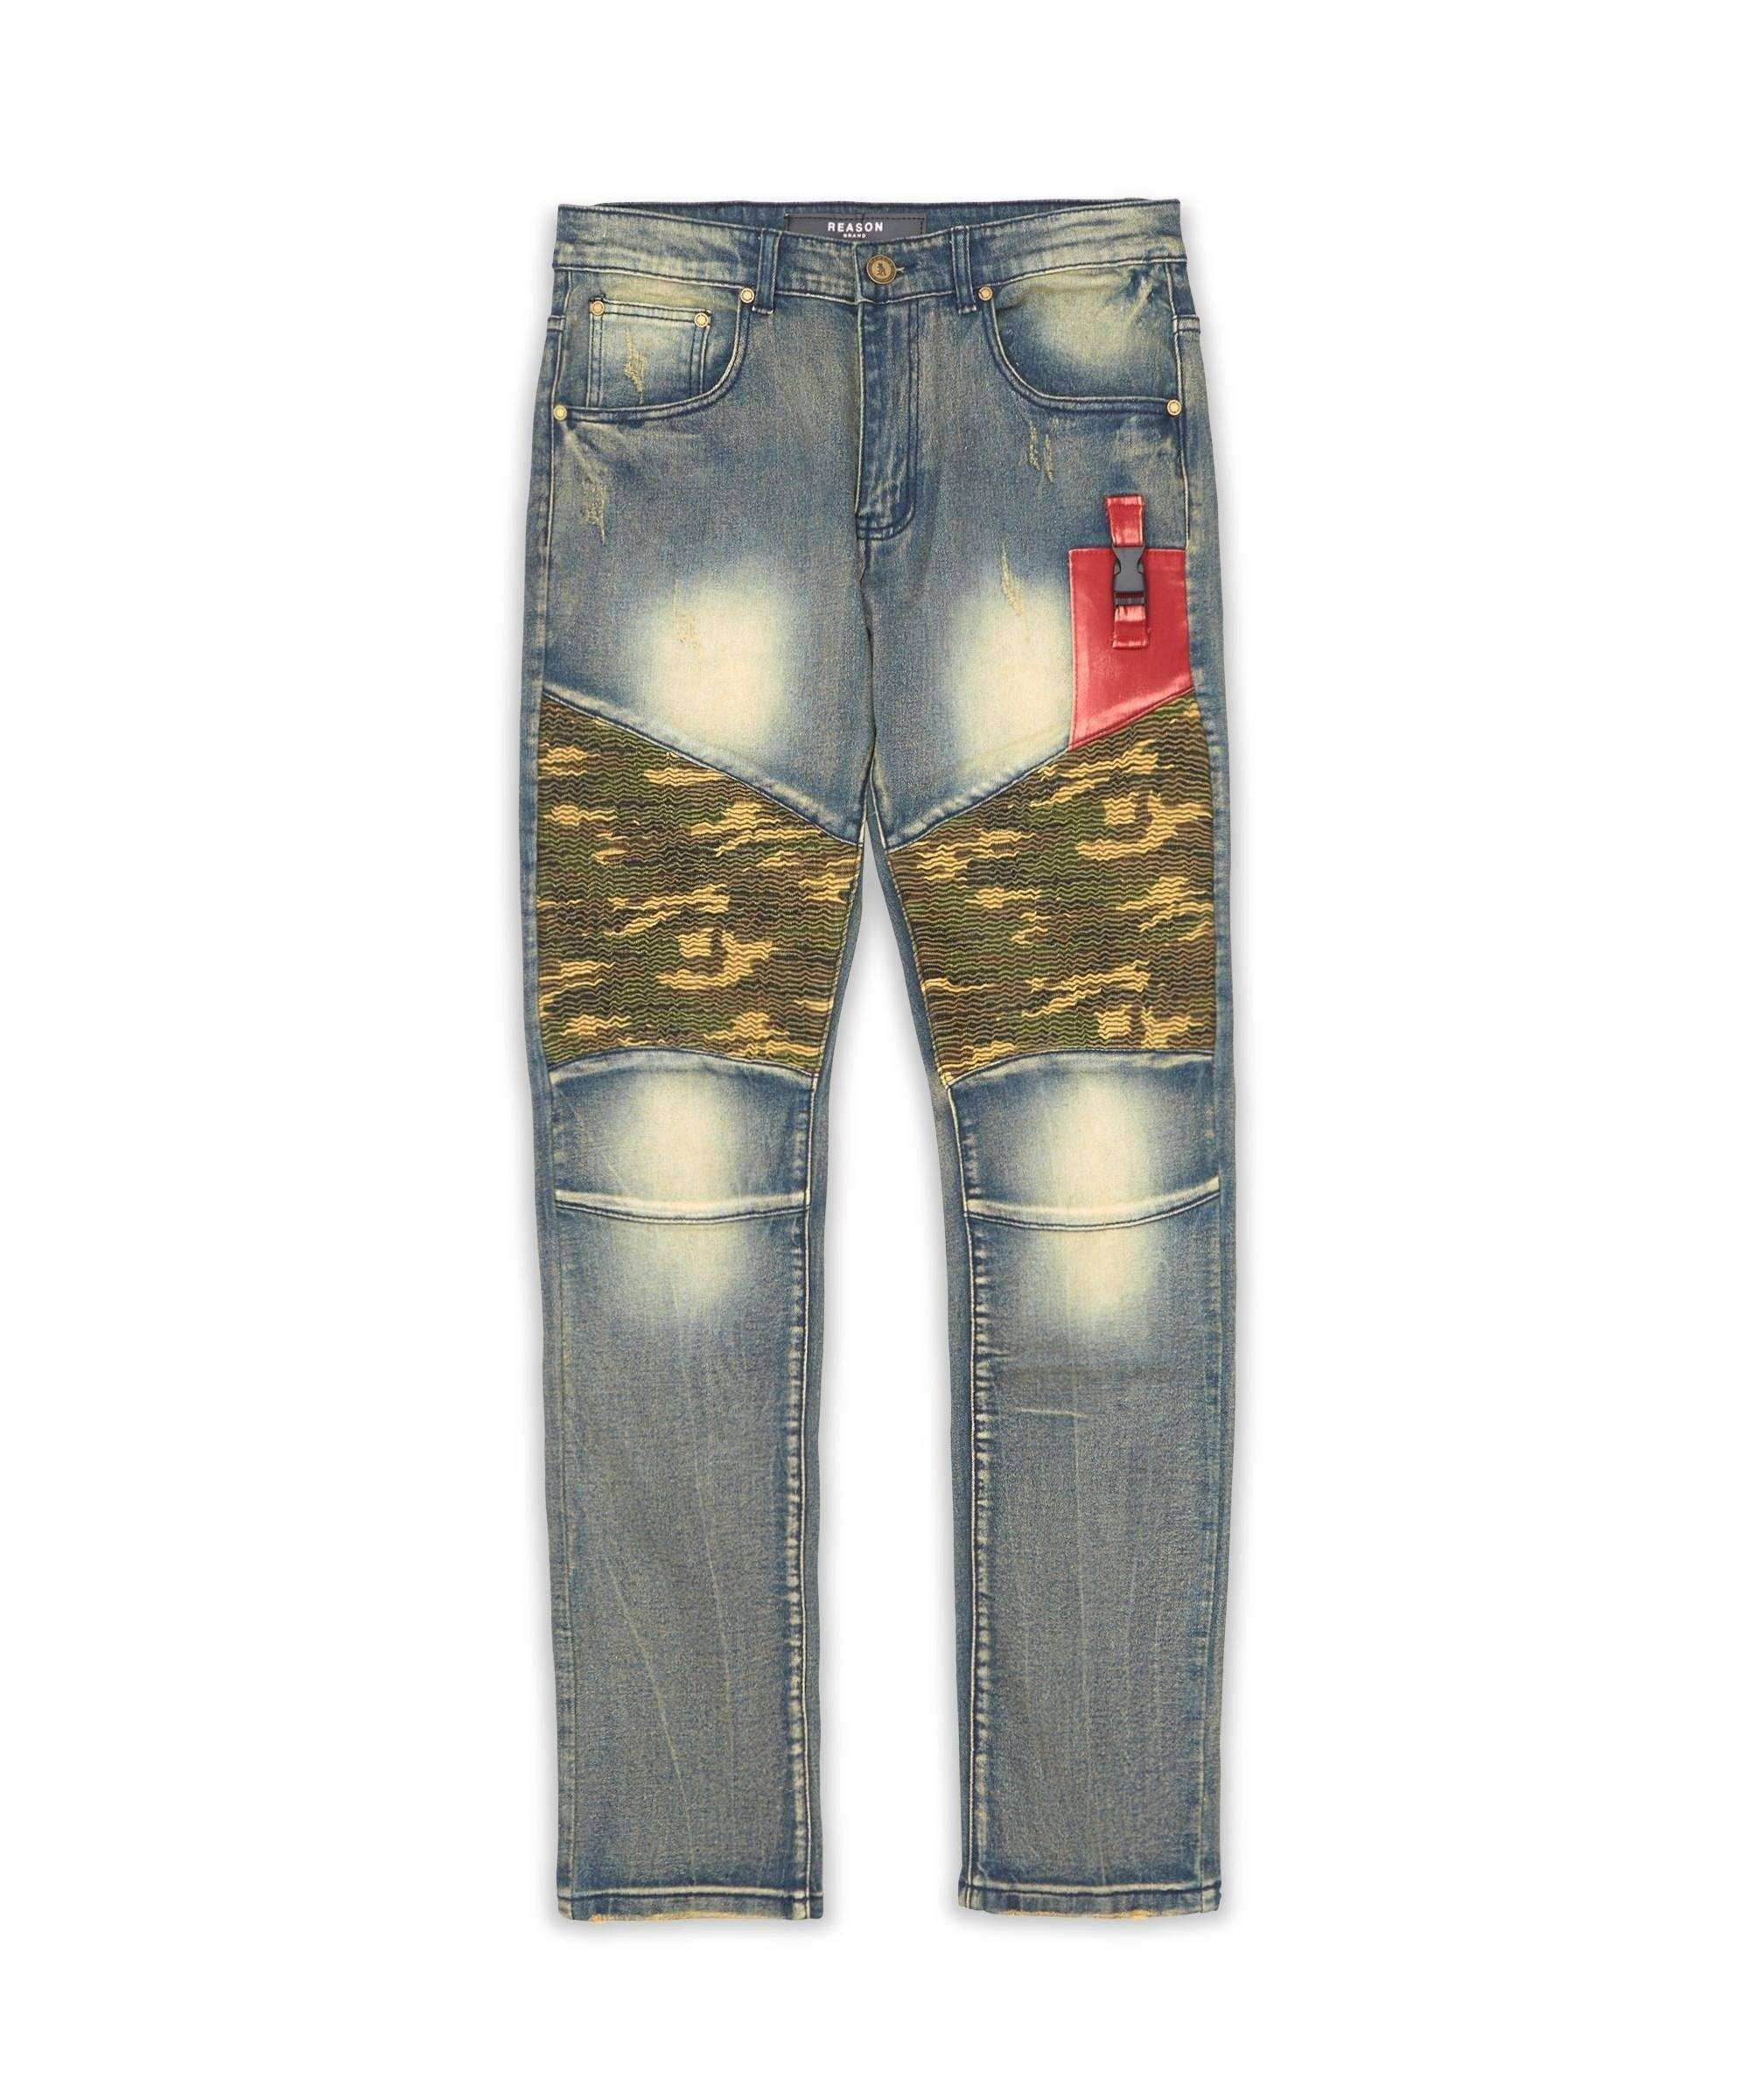 CAMO DENIM PANTS Reason Clothing